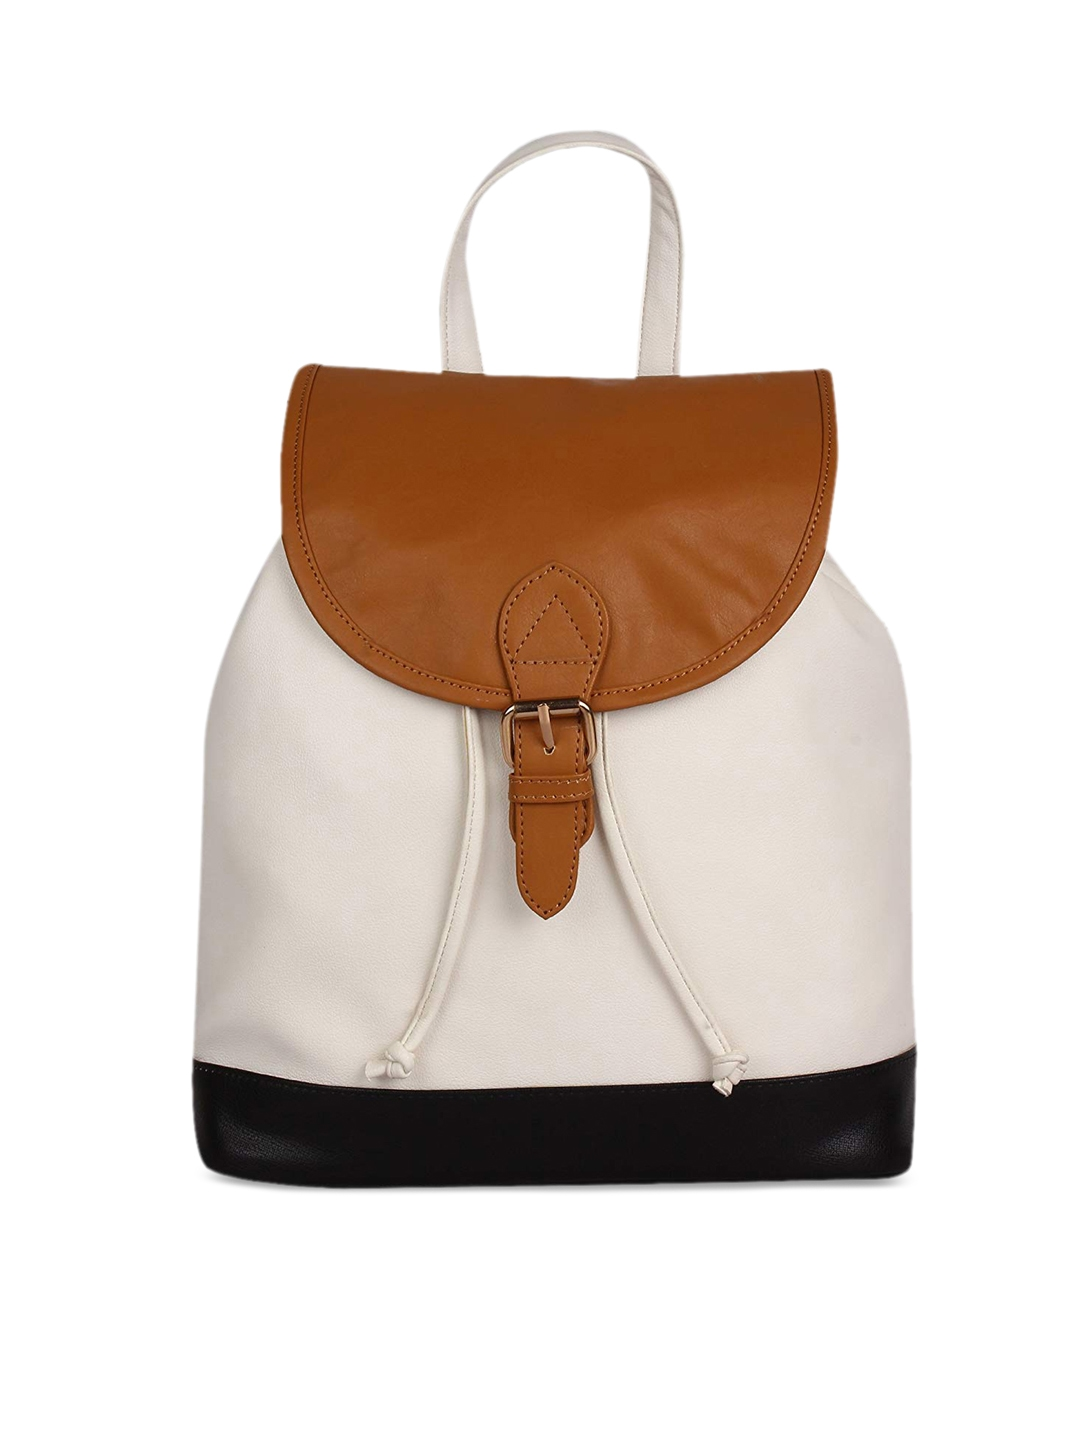 Lychee bags White   Tan Brown Colourblocked Shoulder Bag